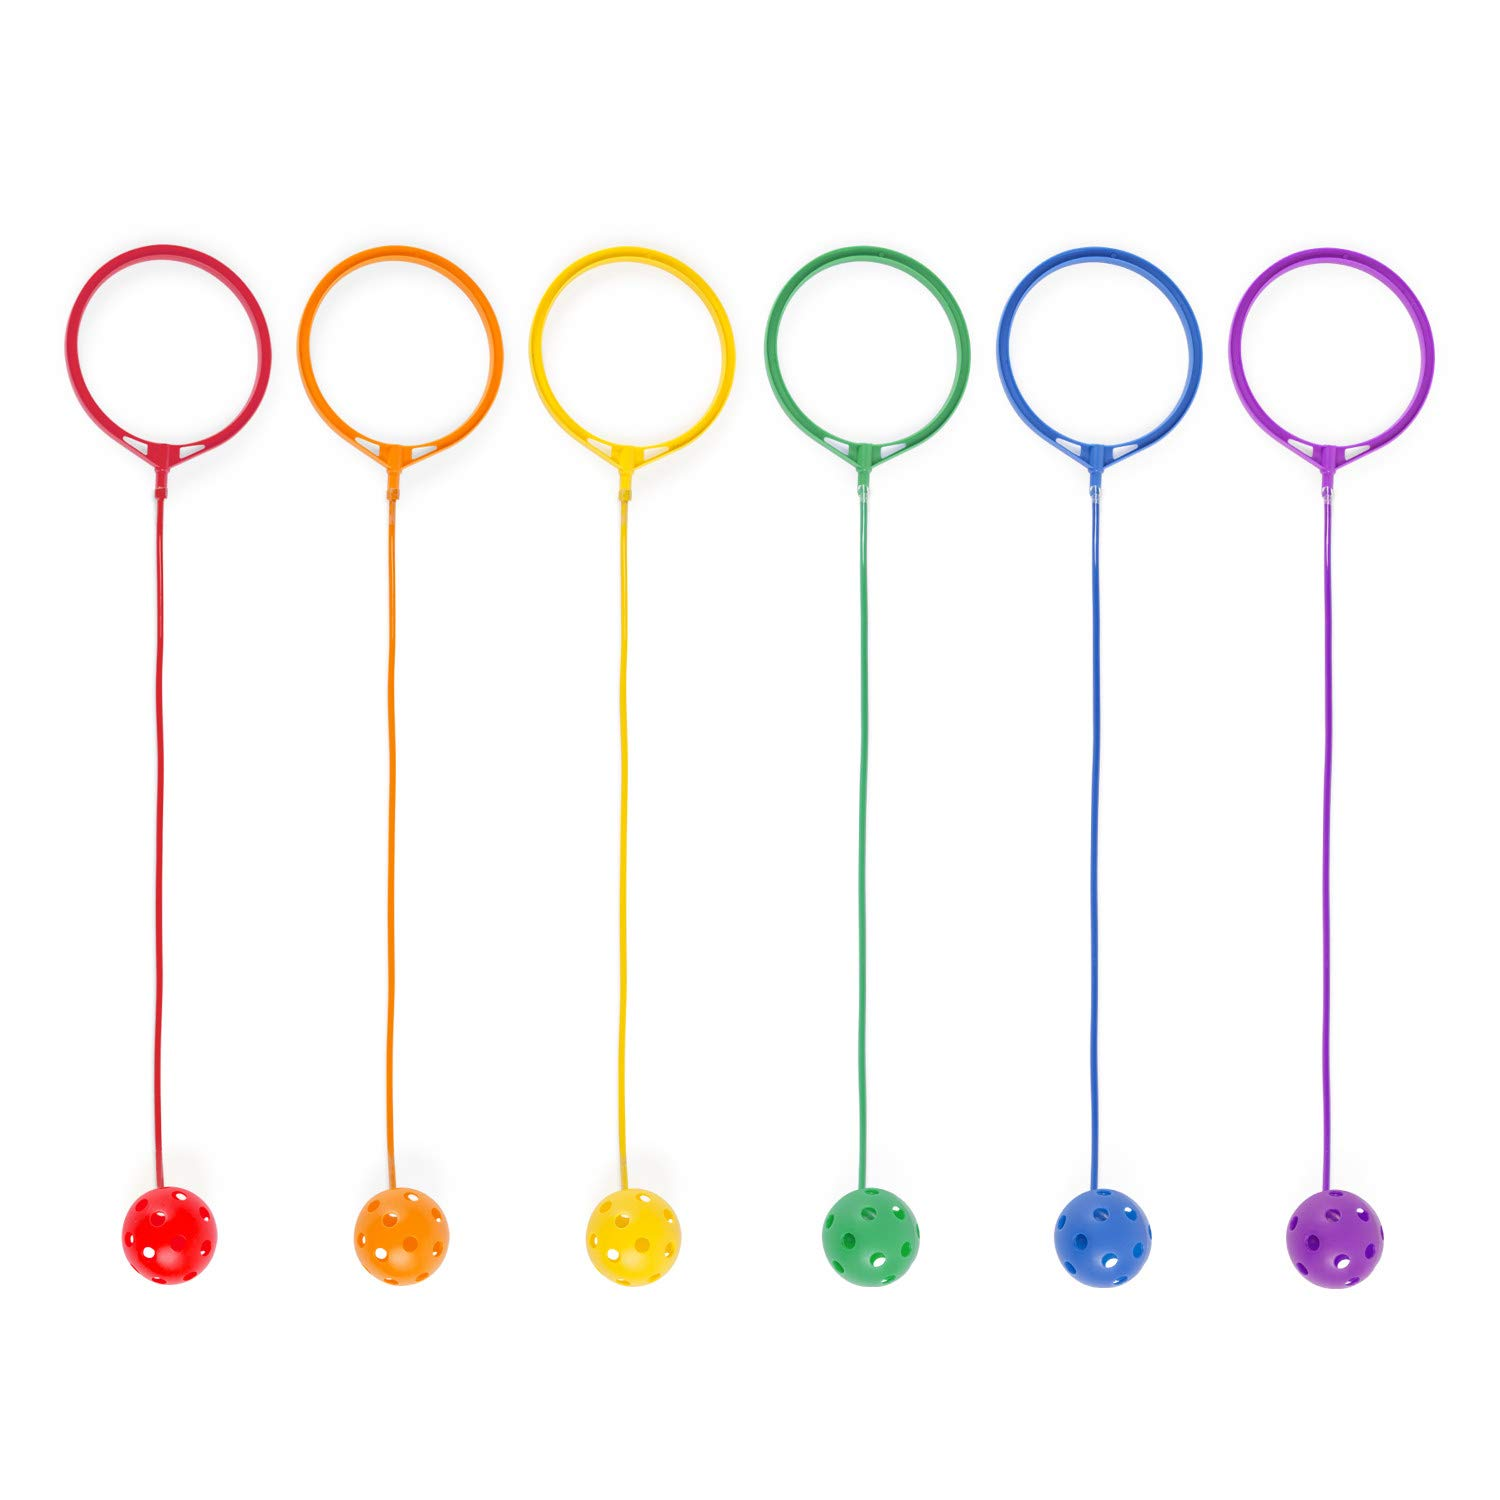 Champion Sports Swing Ball Set, Pack of 6, Assorted Colors by Champion Sports